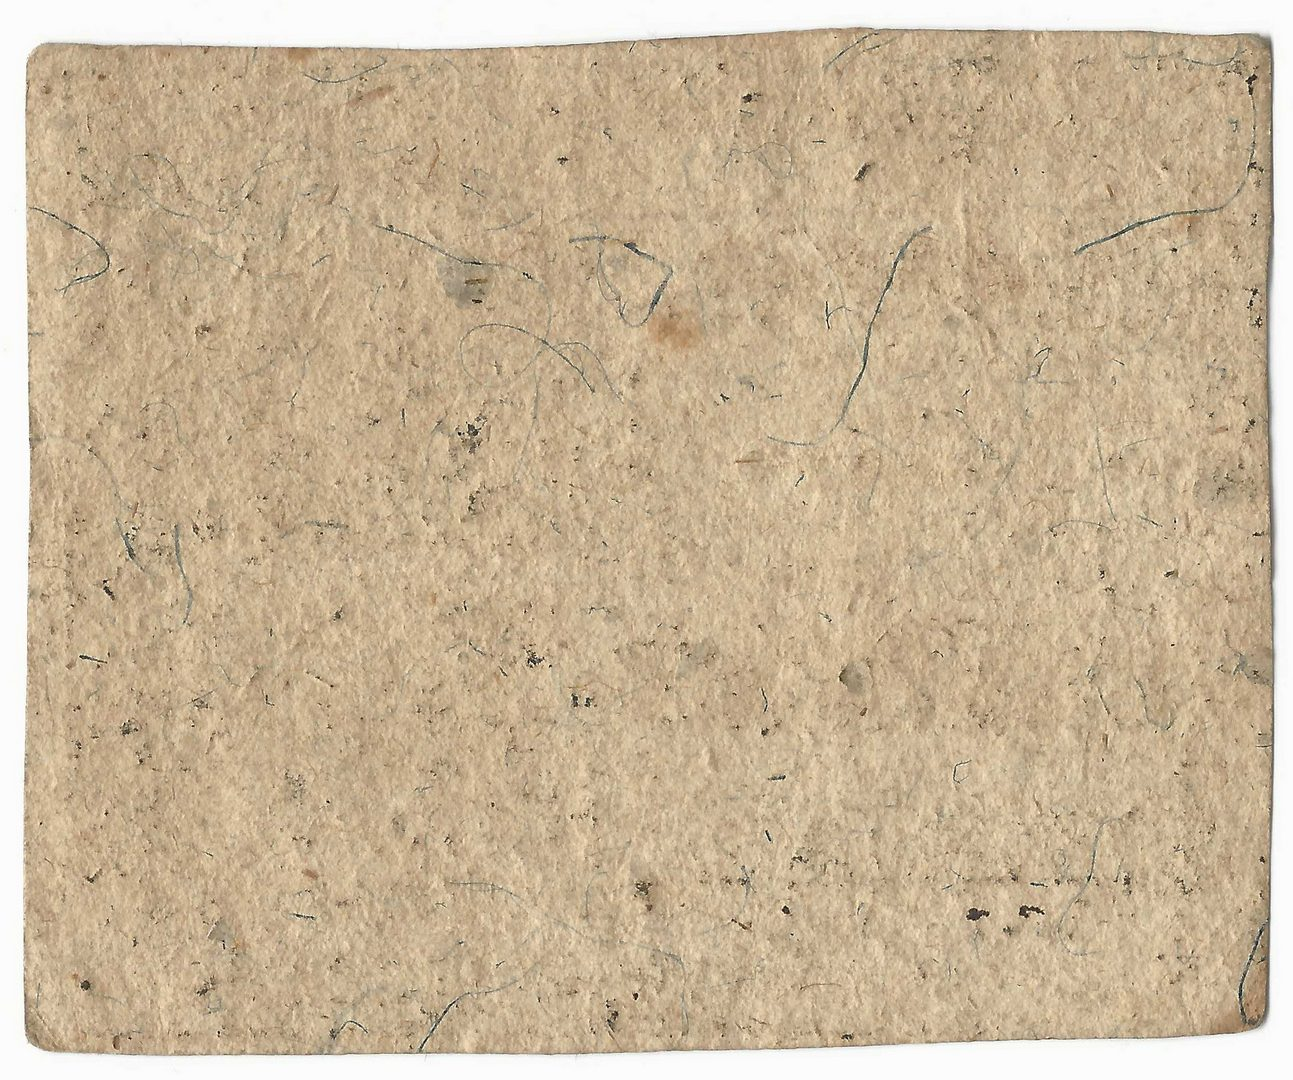 Lot 887: Virginia Pistereen Note, E. Randolph Signature, 1775